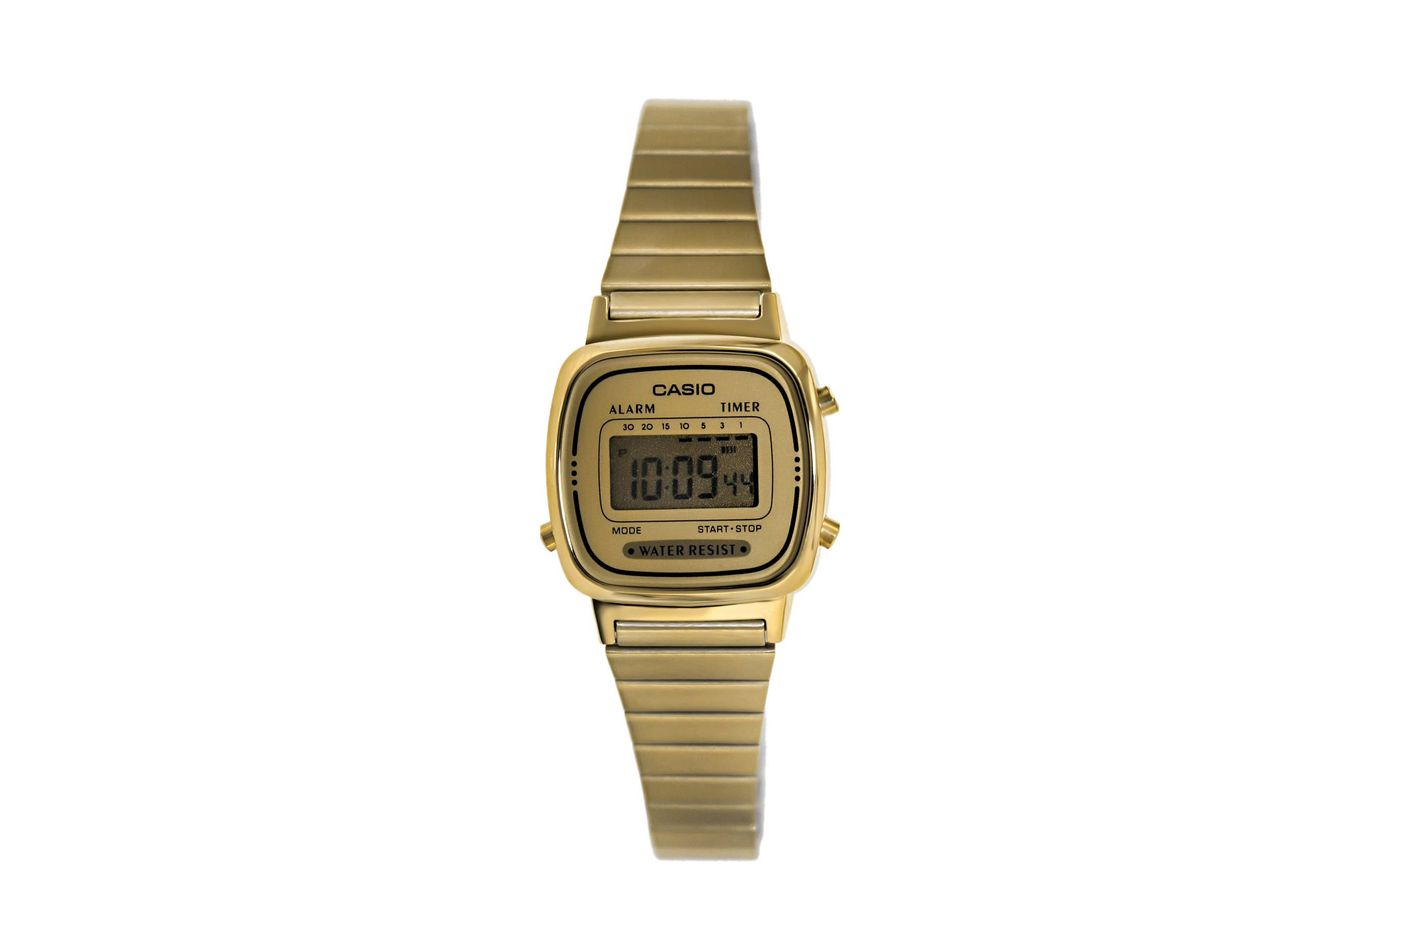 Casio Women's Digital Watch